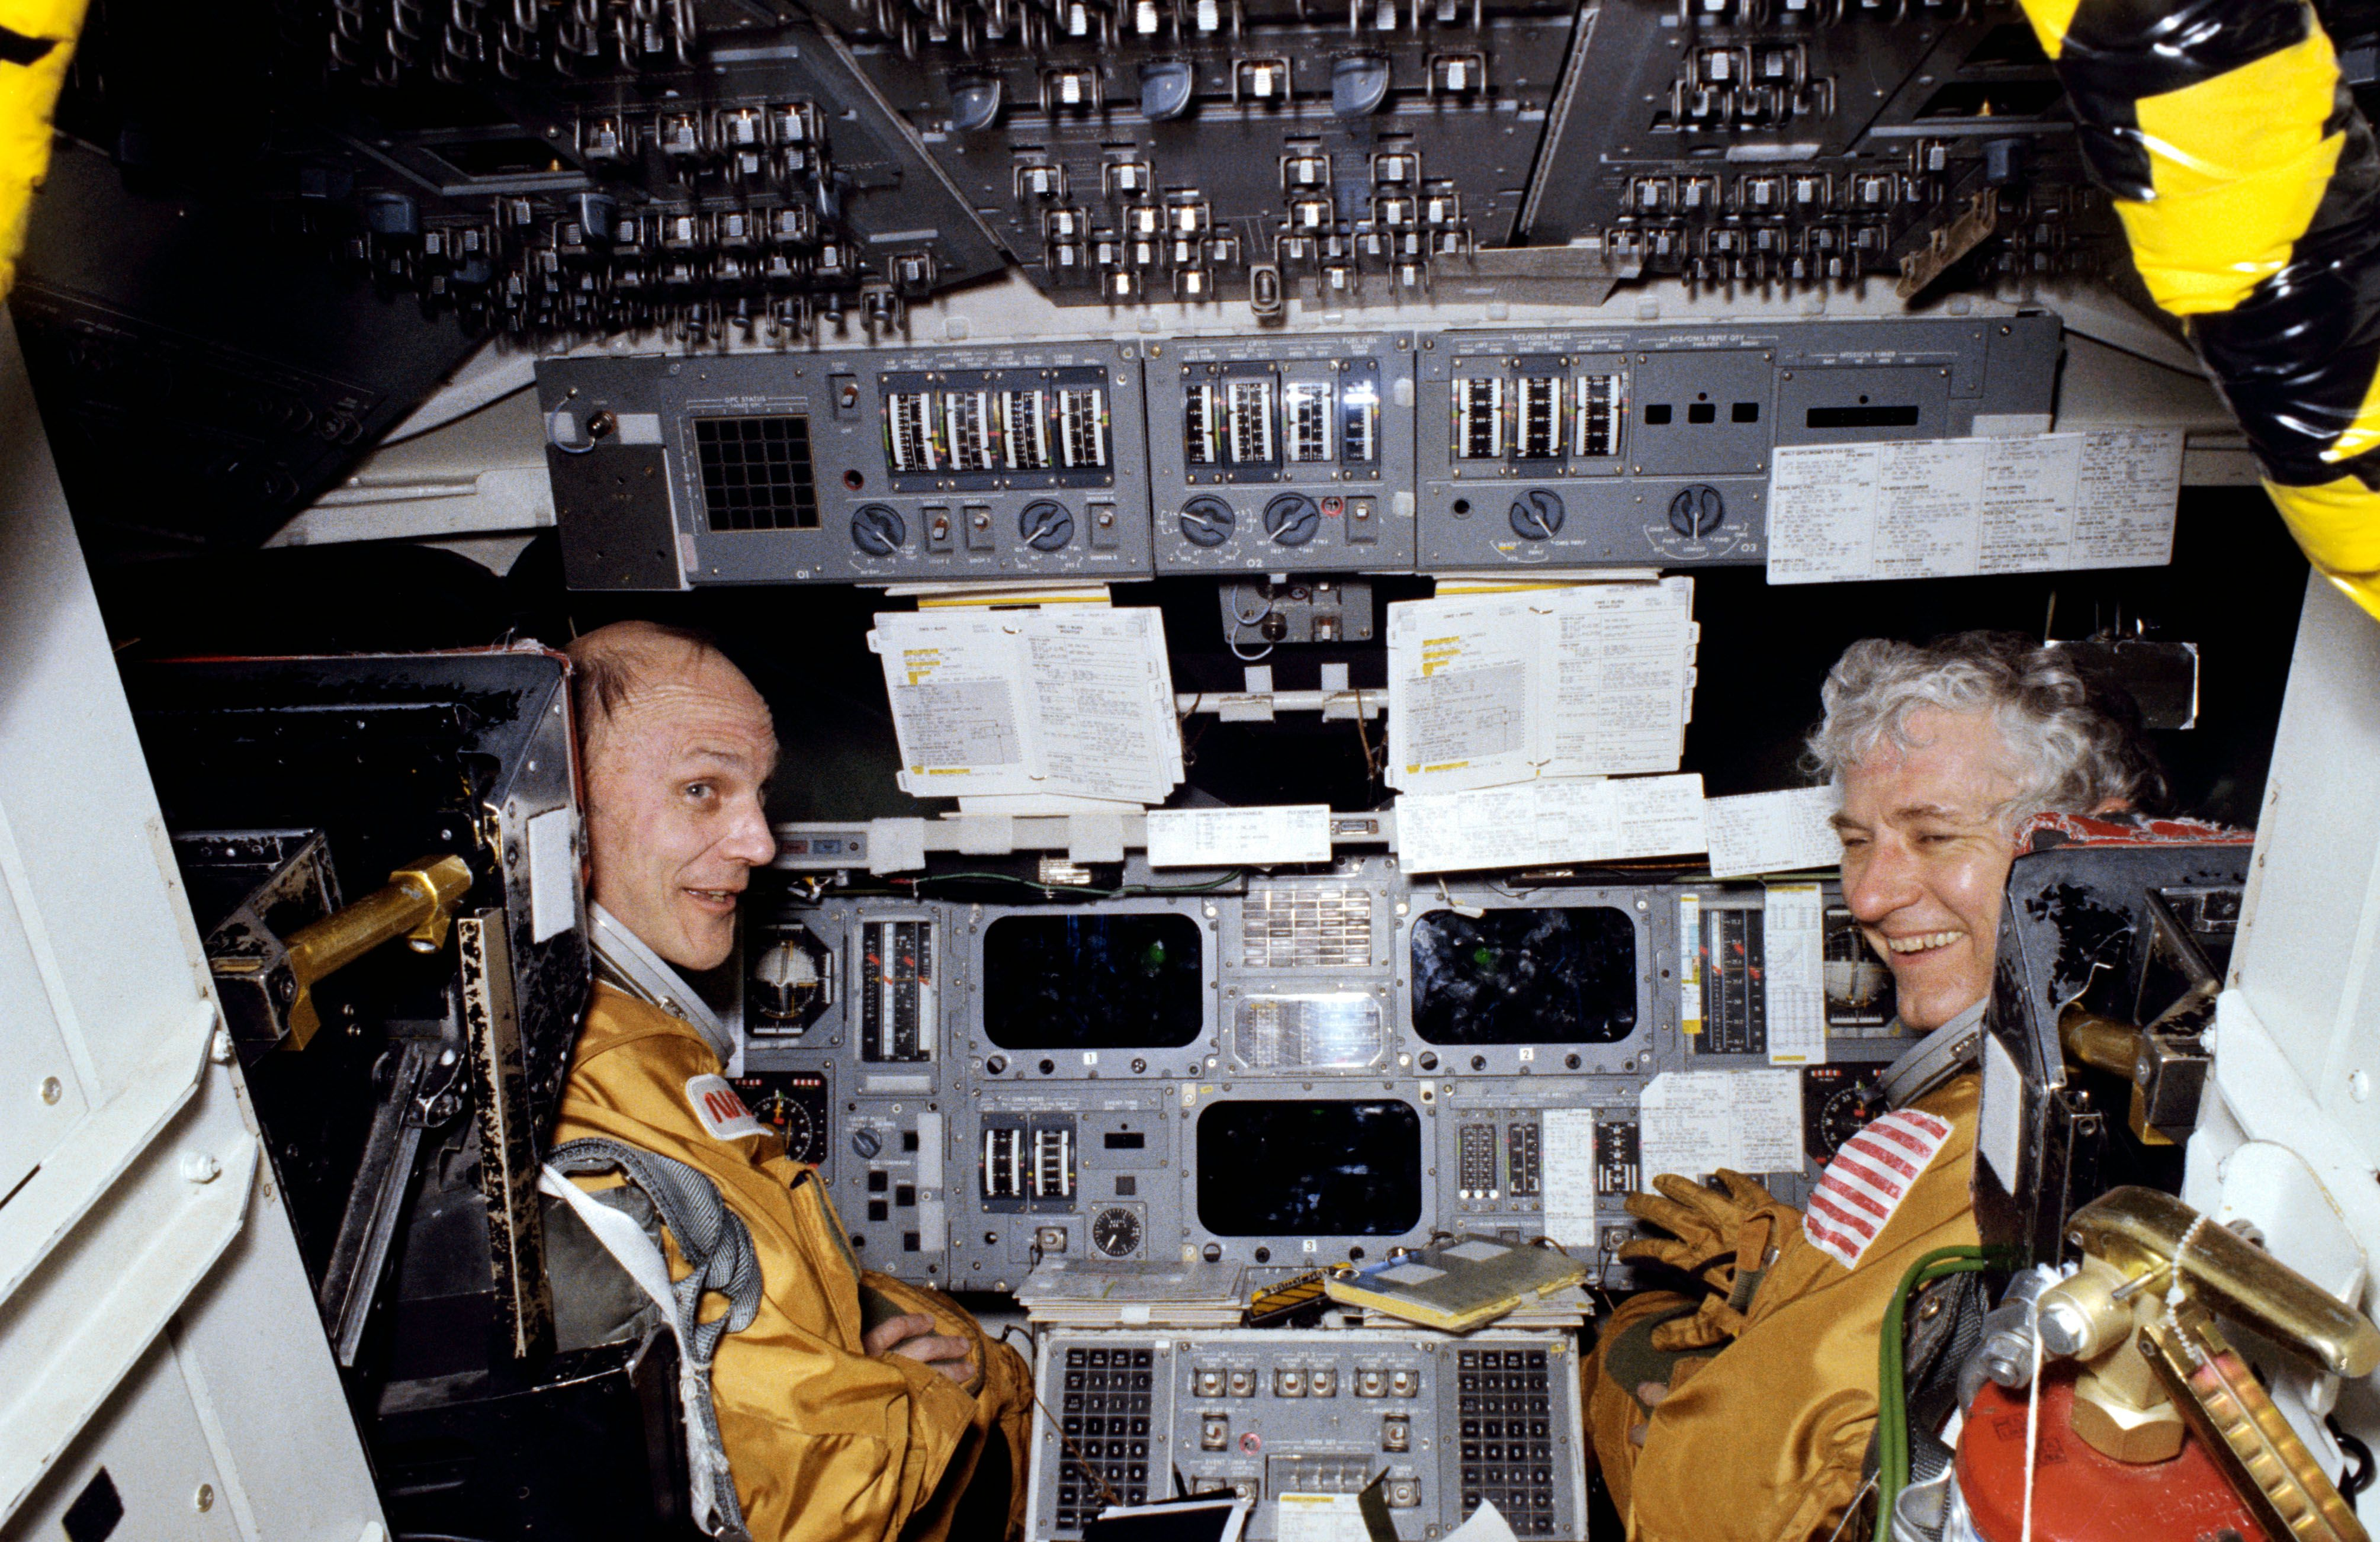 the space shuttle program technologies and accomplishments - photo #39